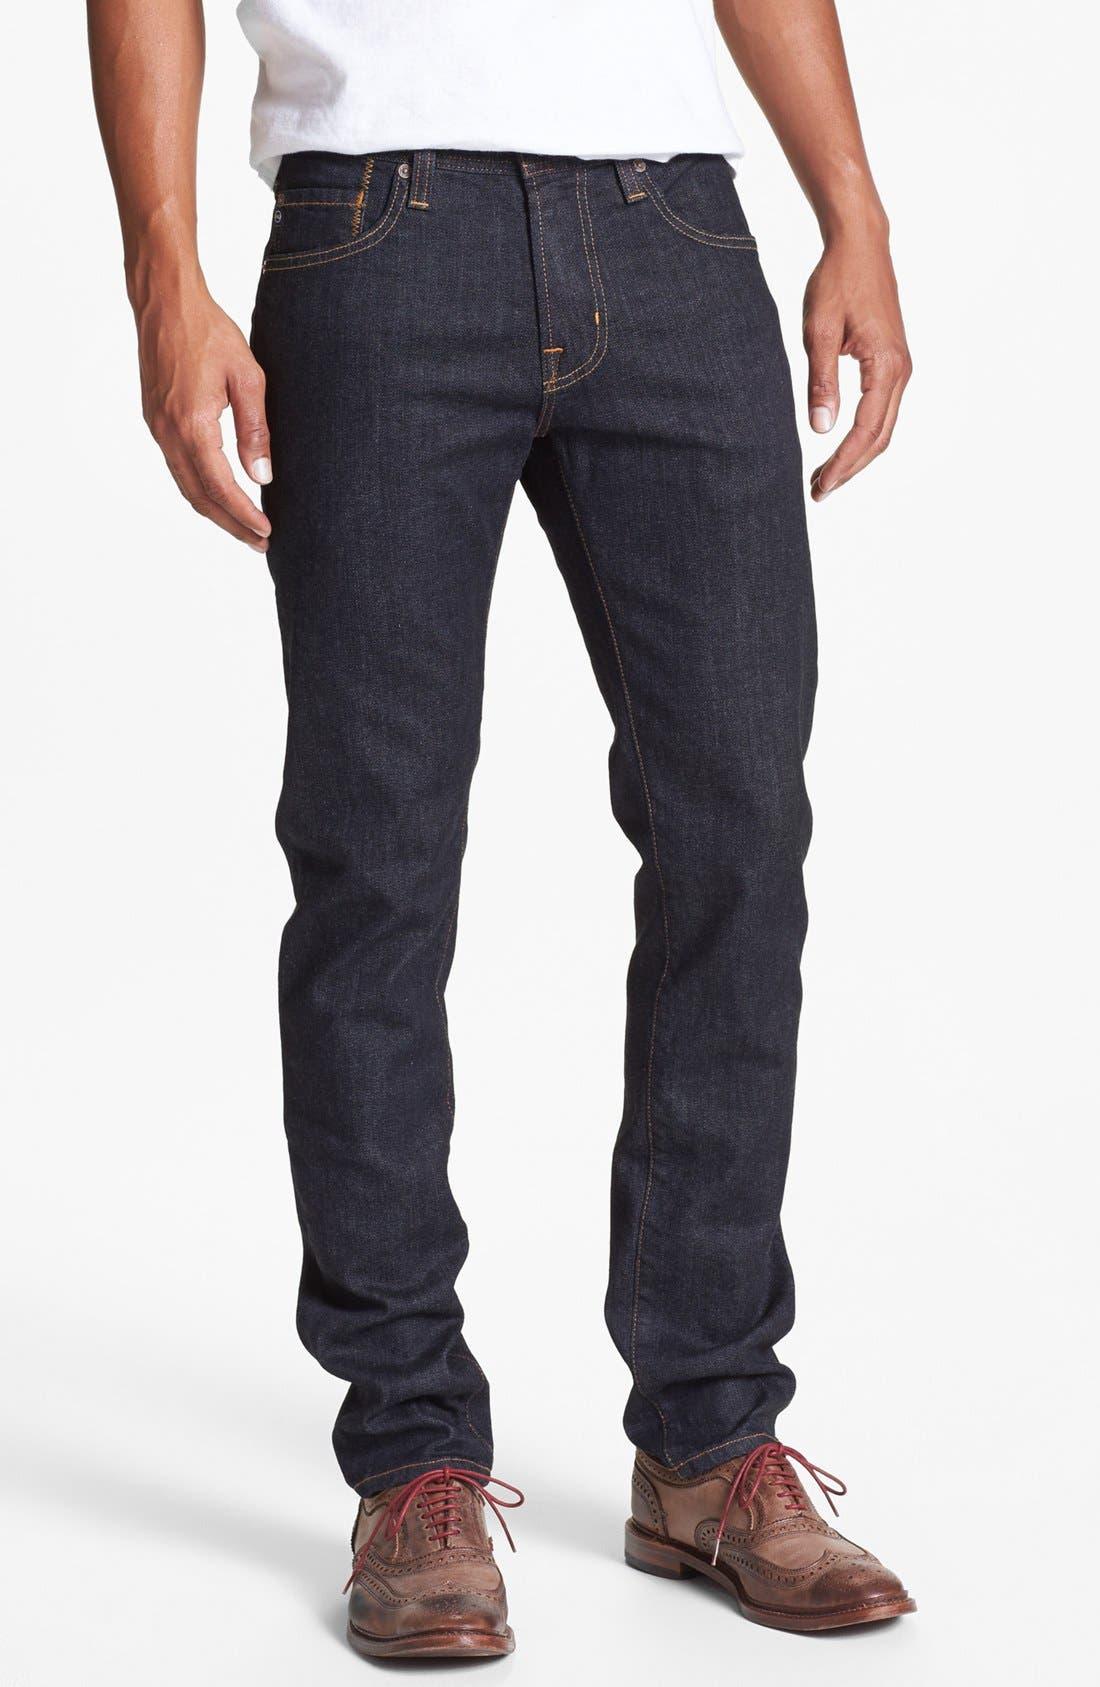 Alternate Image 1 Selected - AG 'Dylan' Skinny Fit Jeans (Jack)